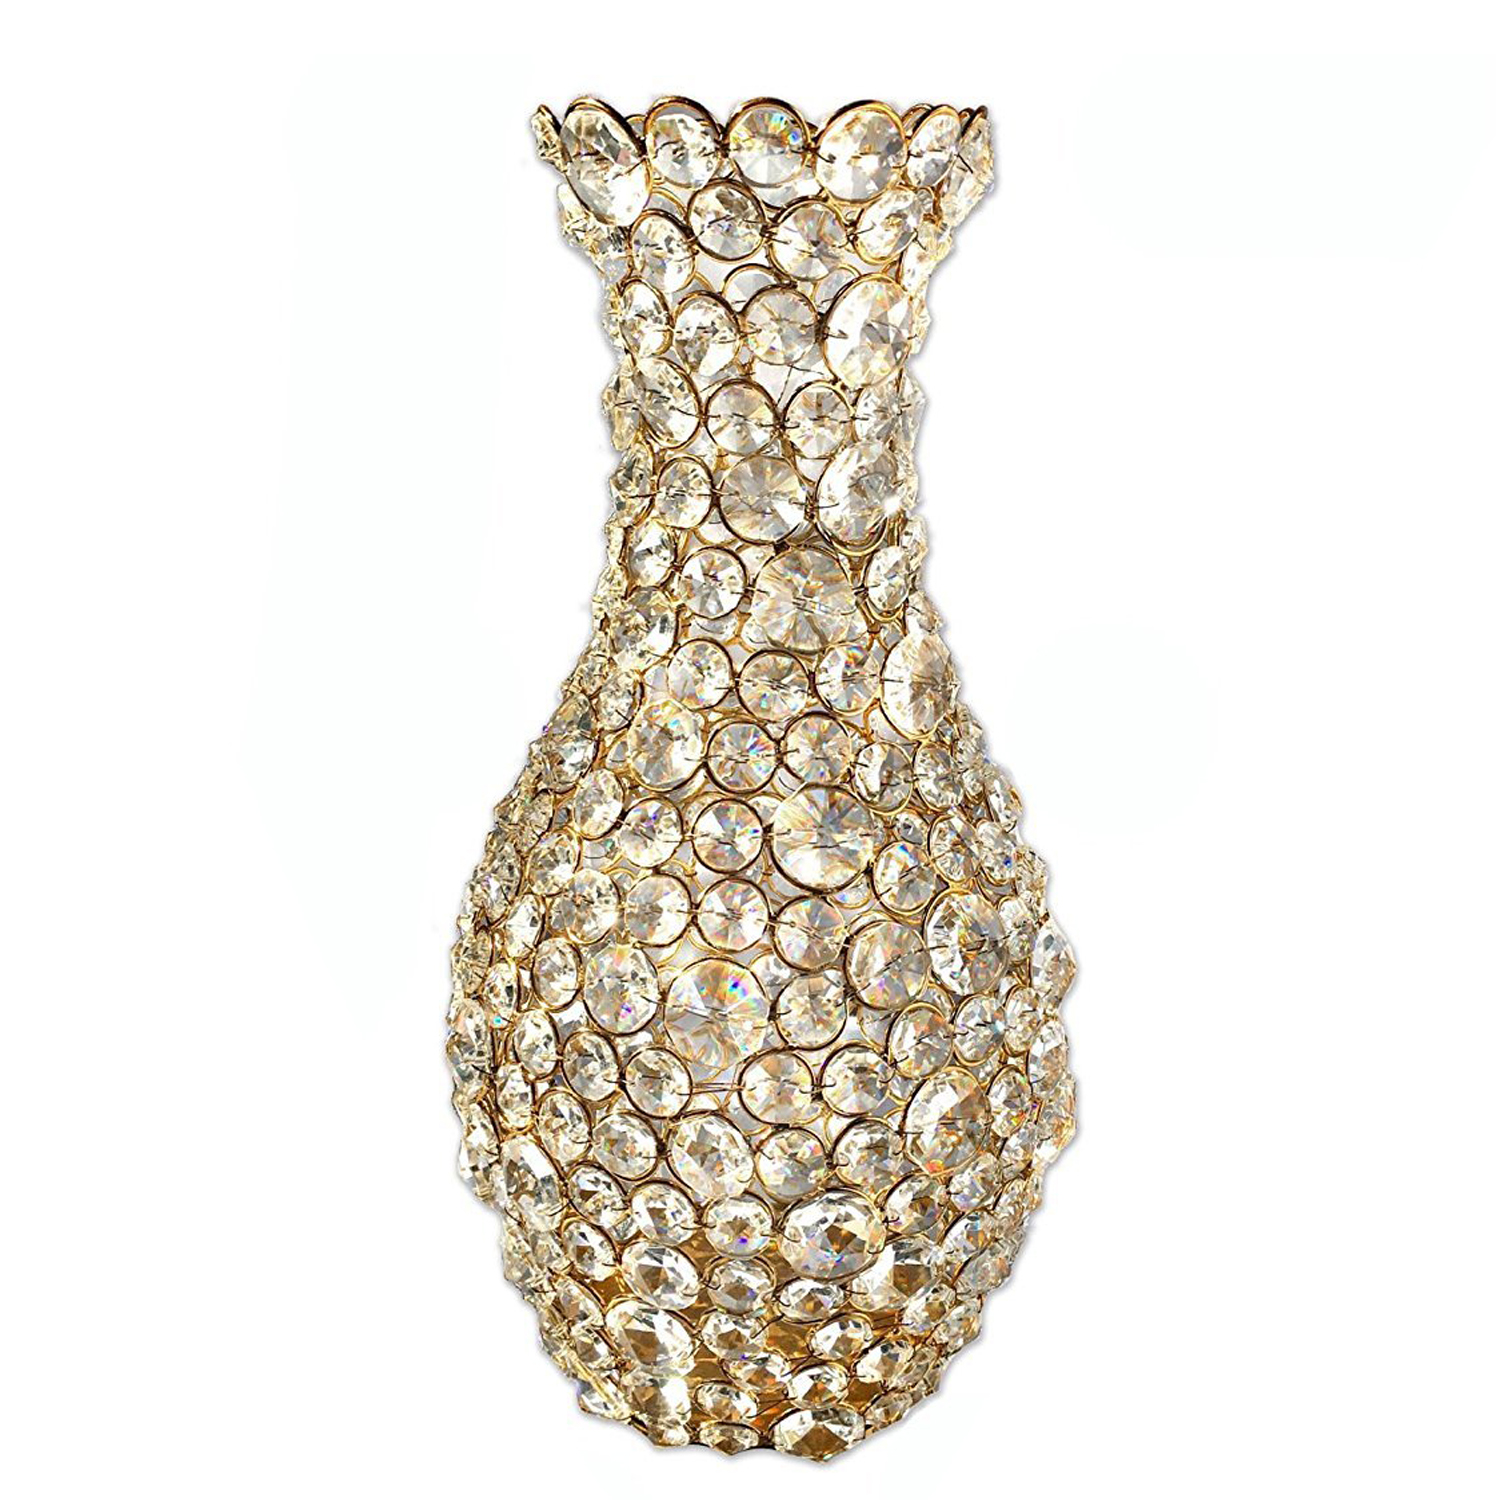 Crystal Gold Flower Vase